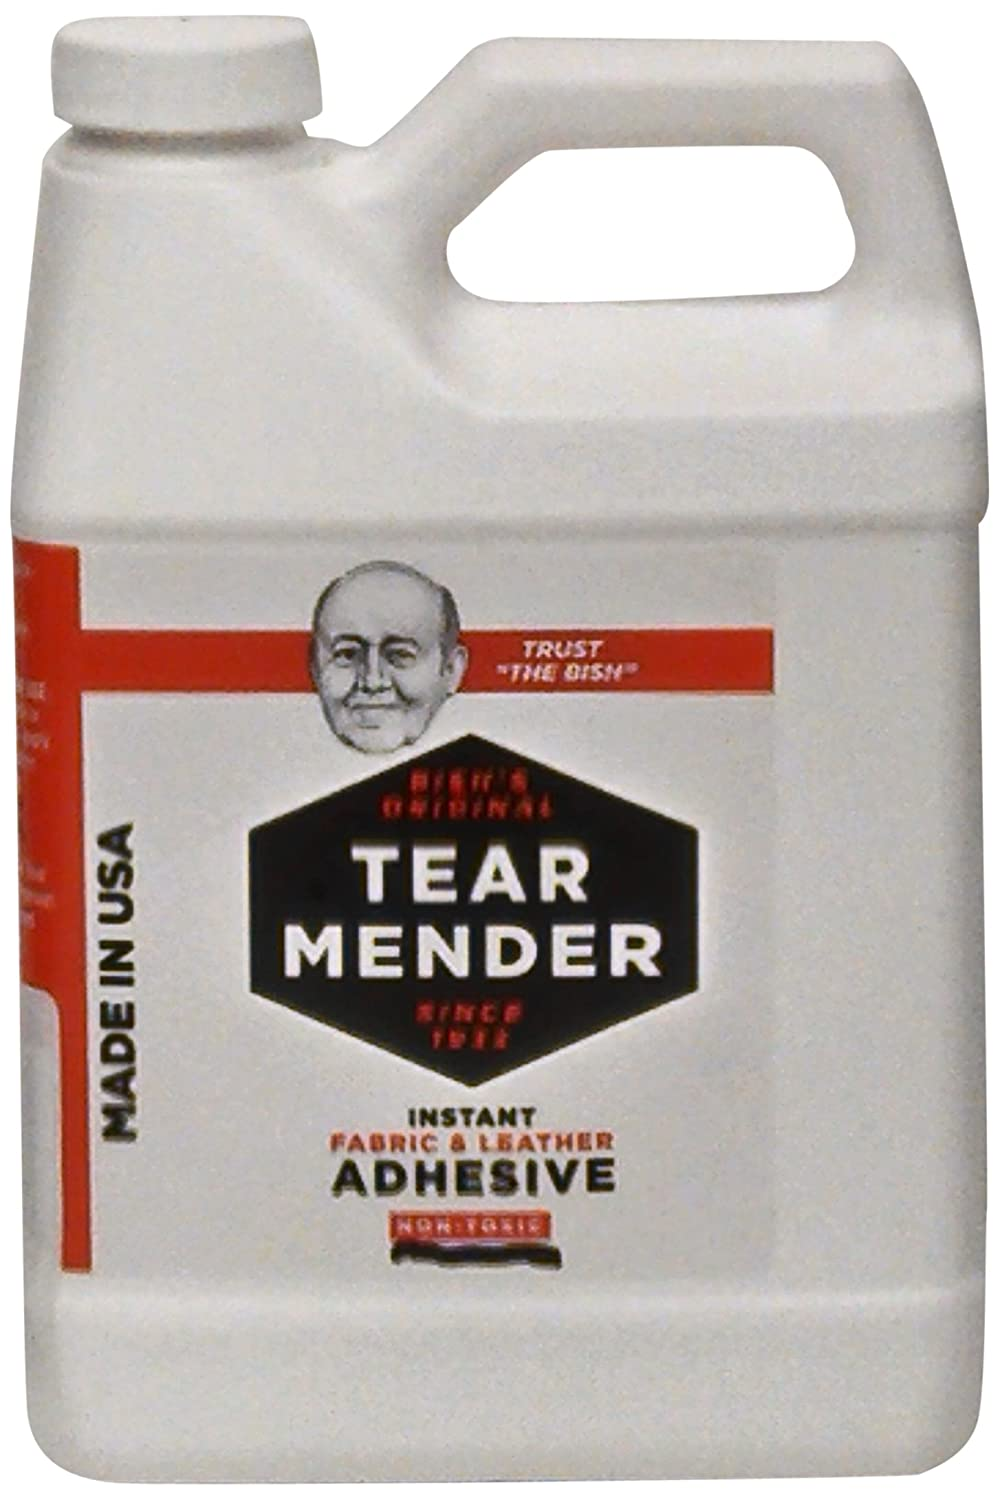 Tear Mender TG-32 Bish's Original Tear Mender Instant Fabric and Leather Adhesive, 950ml Container 32 oz  B00GOR27LI